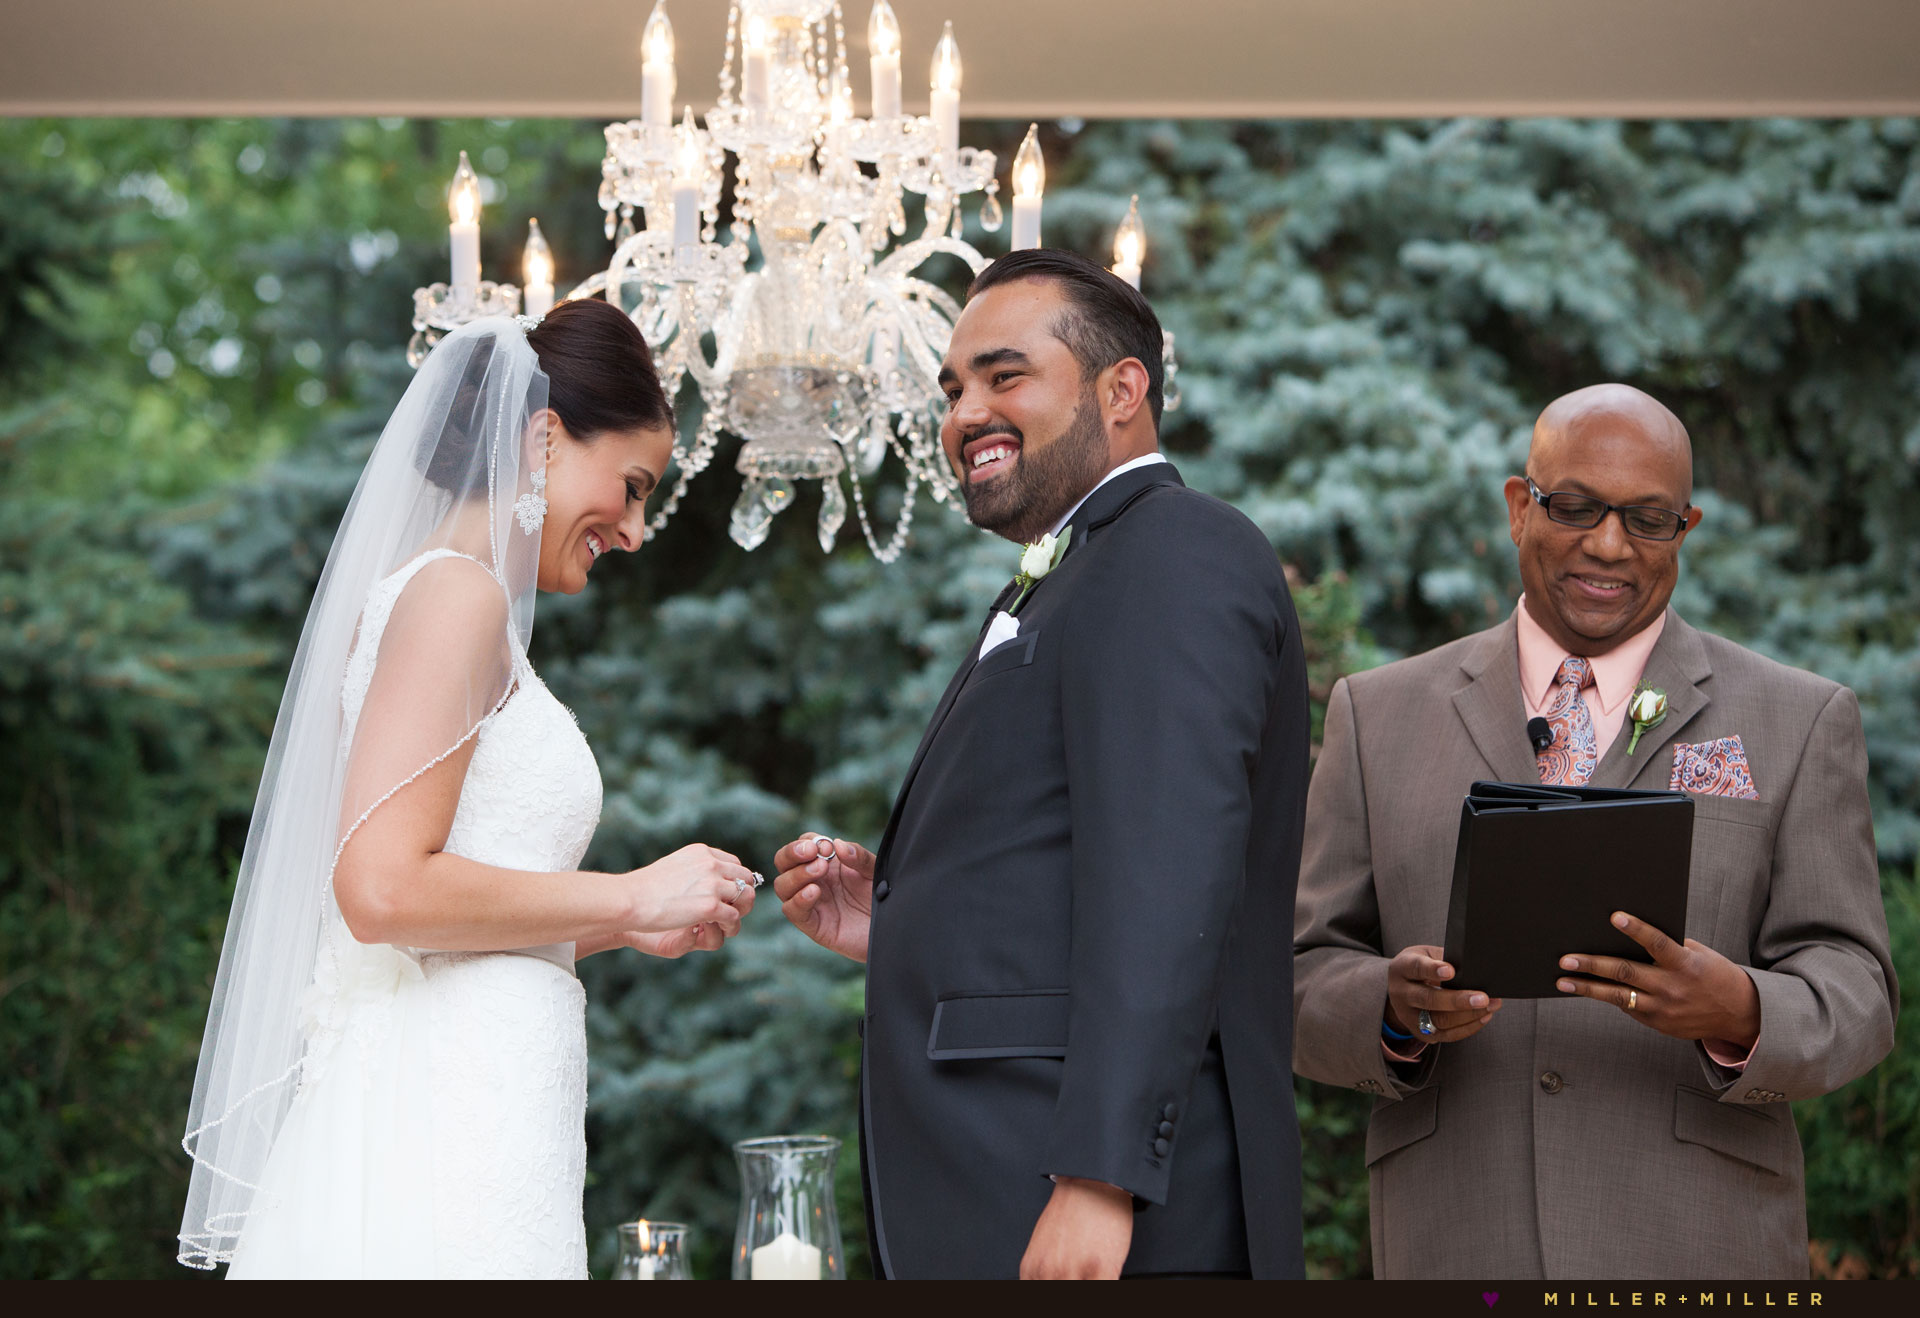 Sarah Ozzie Guillen Chicago wedding photographs